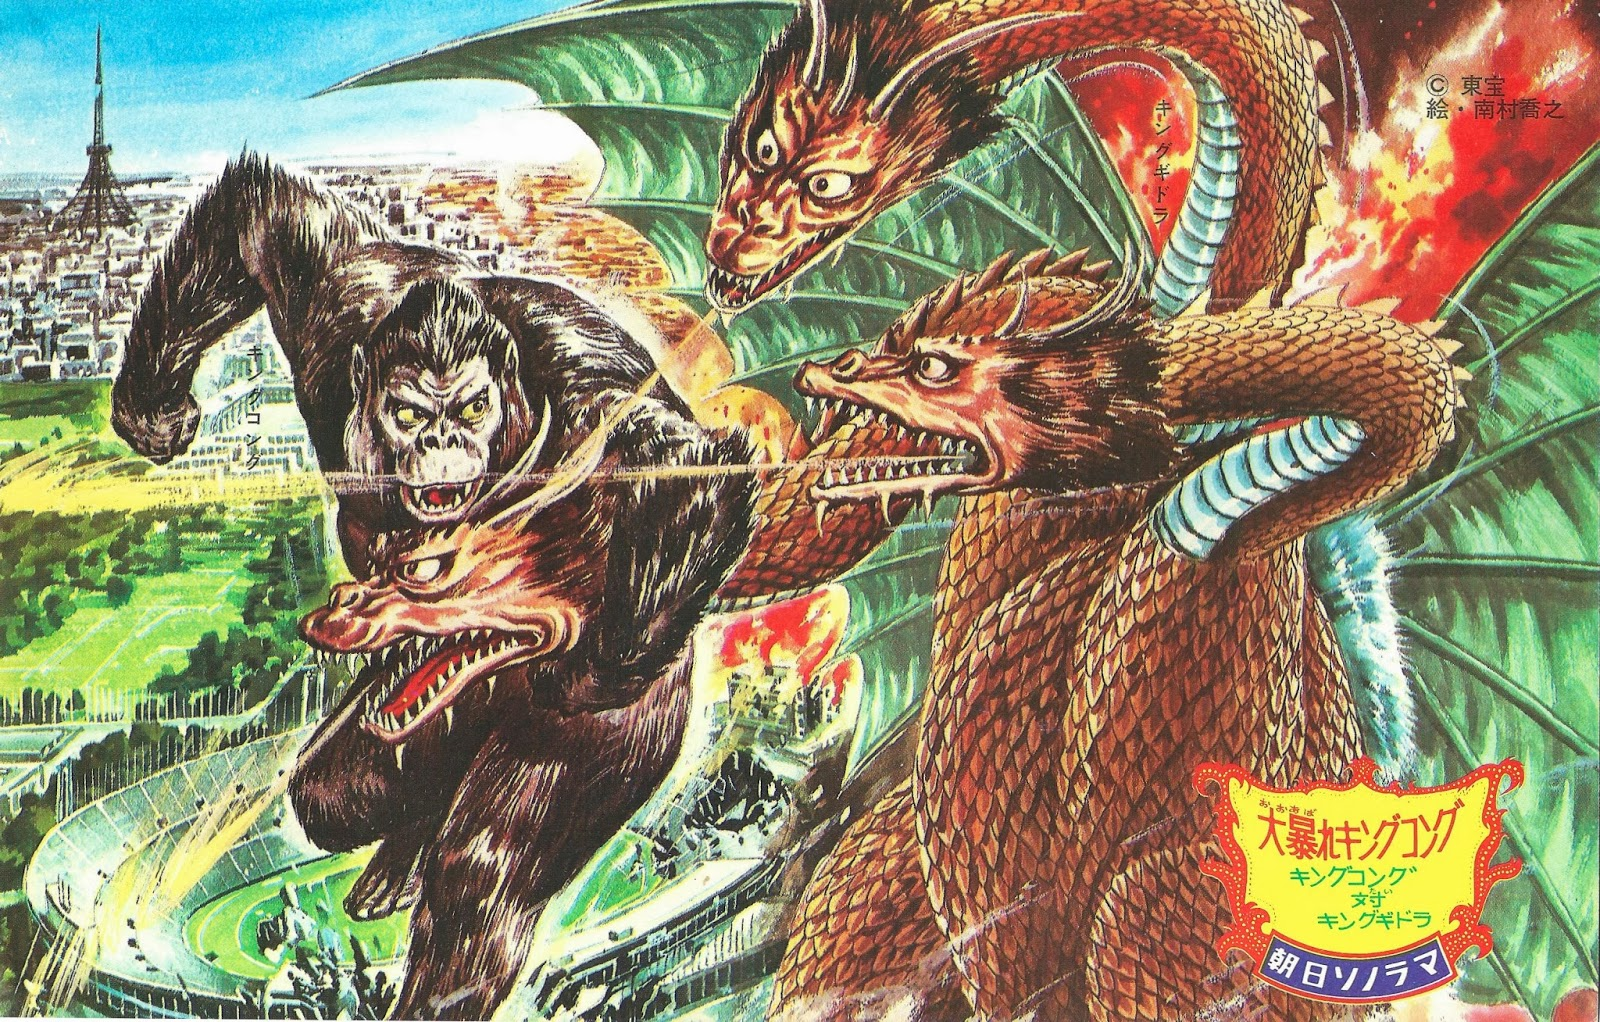 Kingukongu no gyakushu / King Kong Escapes (1967)(Toho)